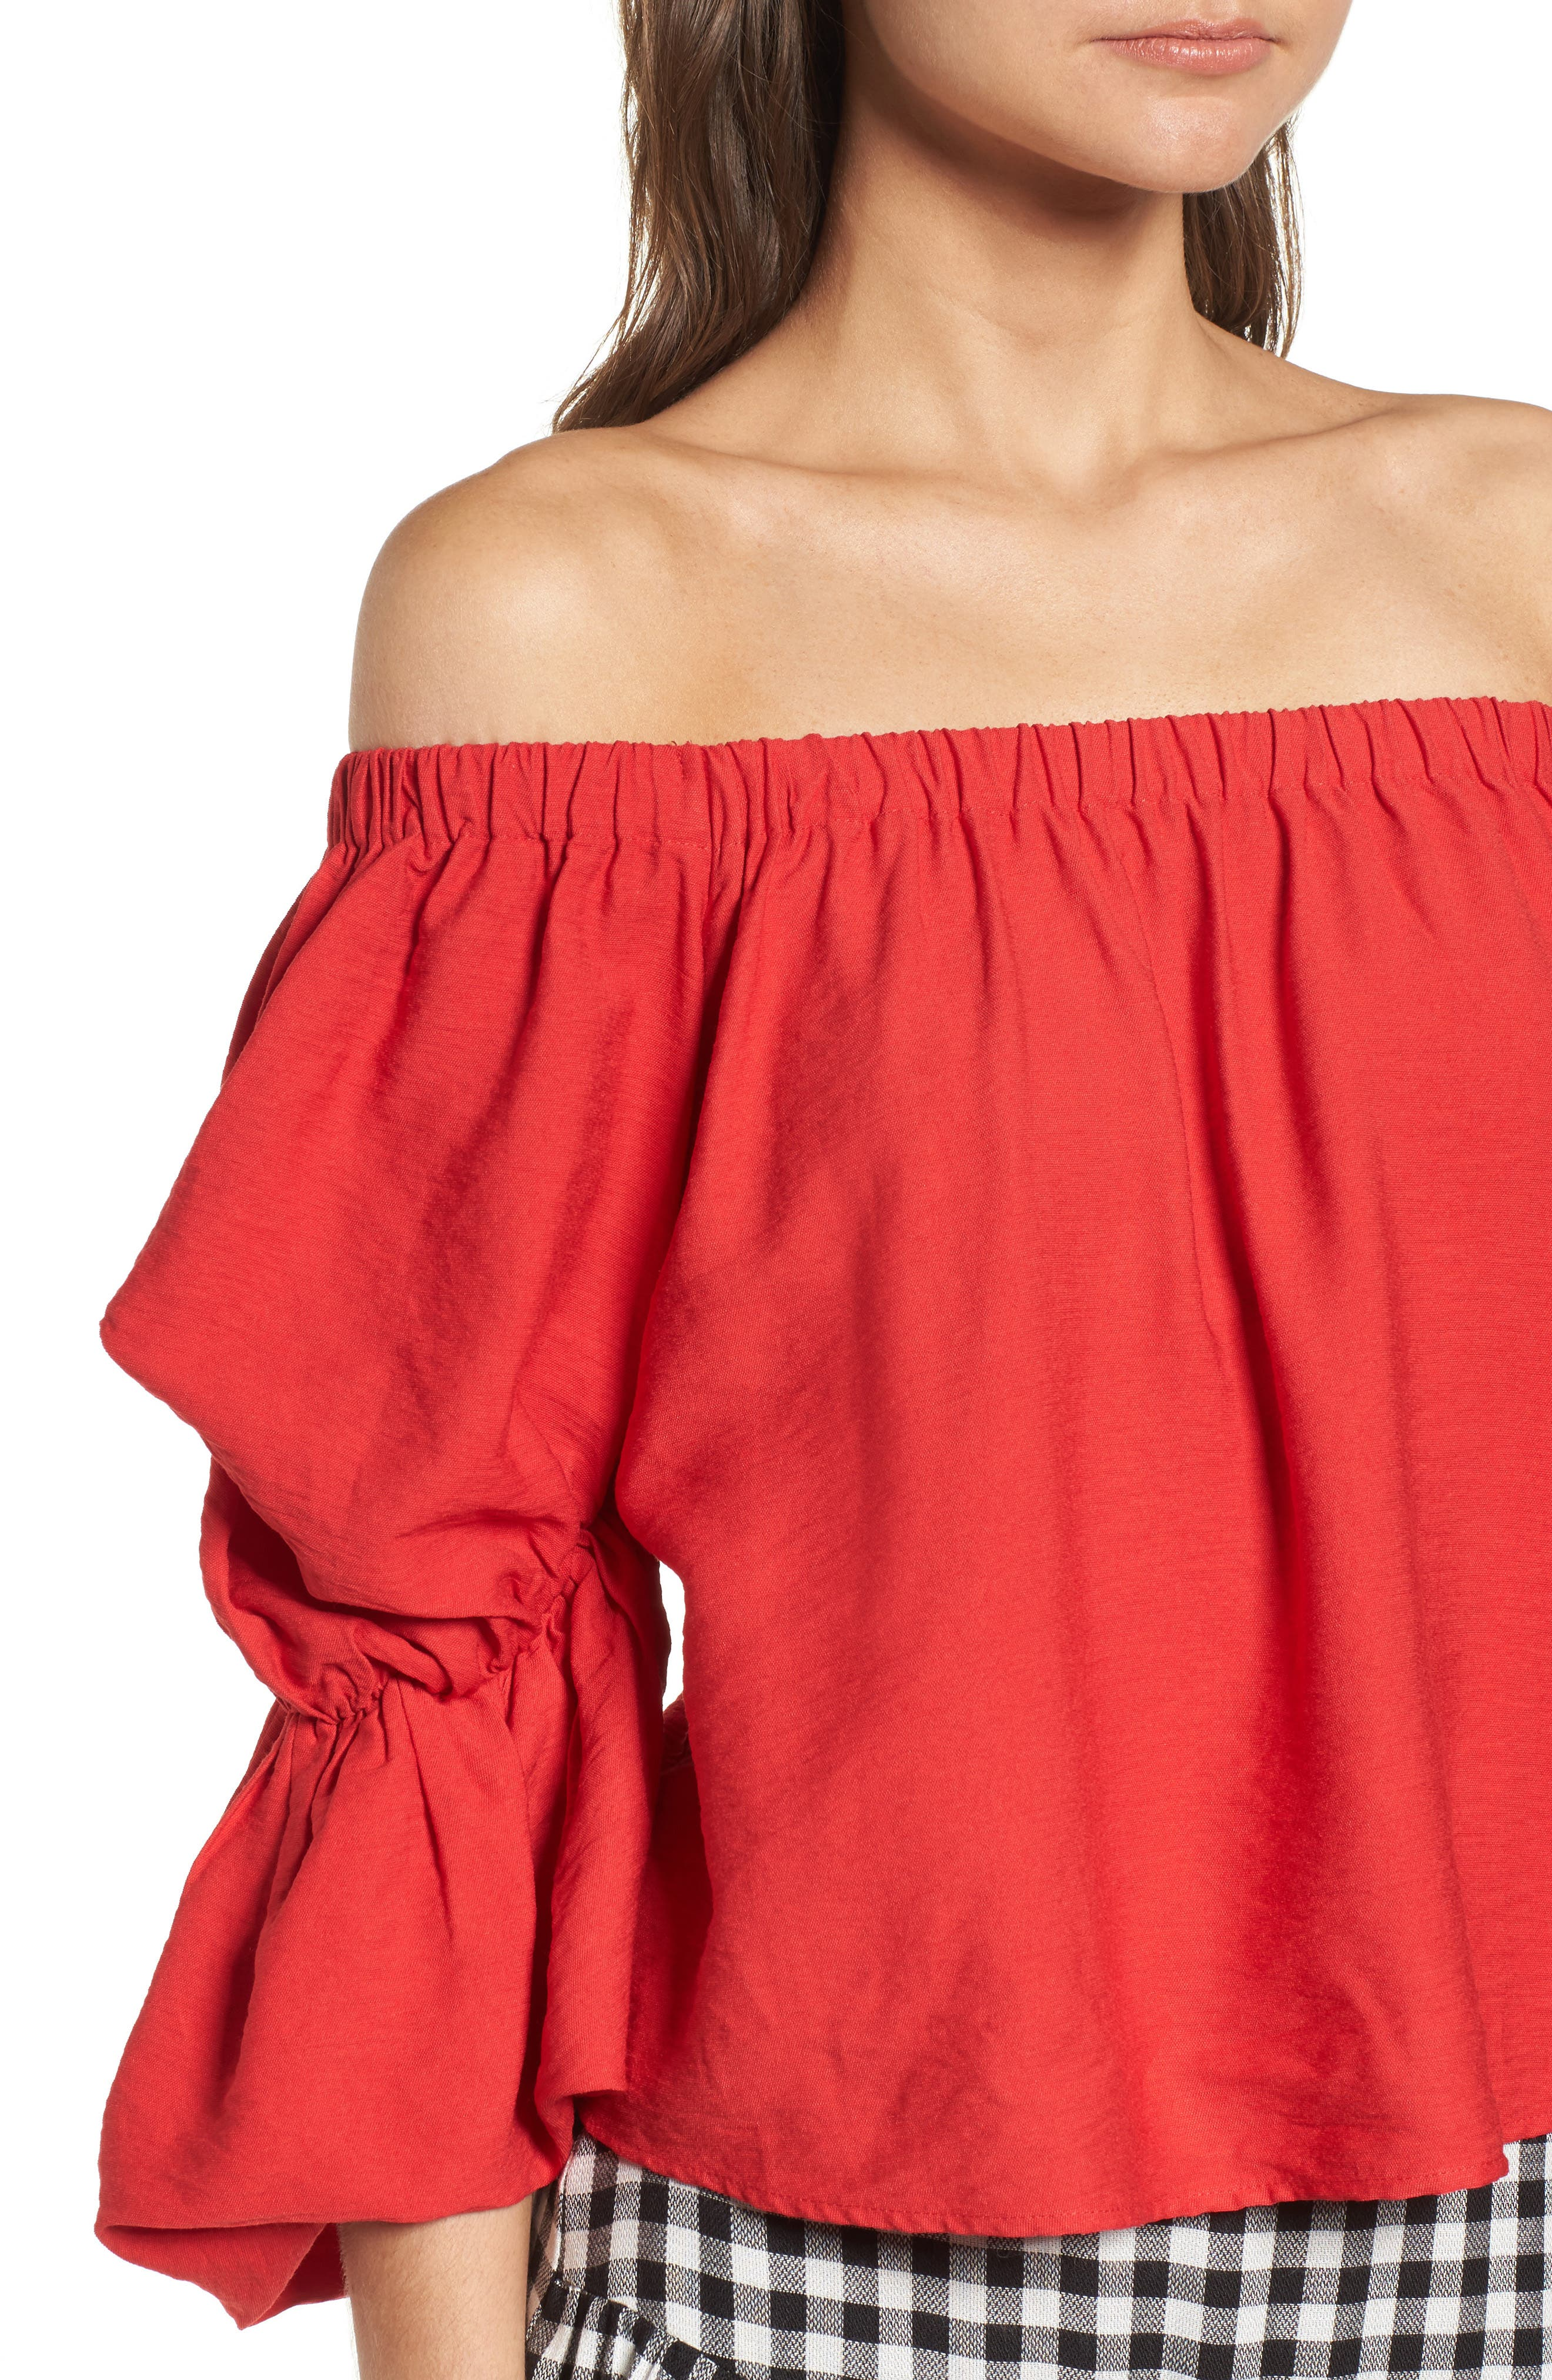 Puff Sleeve Off the Shoulder Top,                             Alternate thumbnail 4, color,                             Red